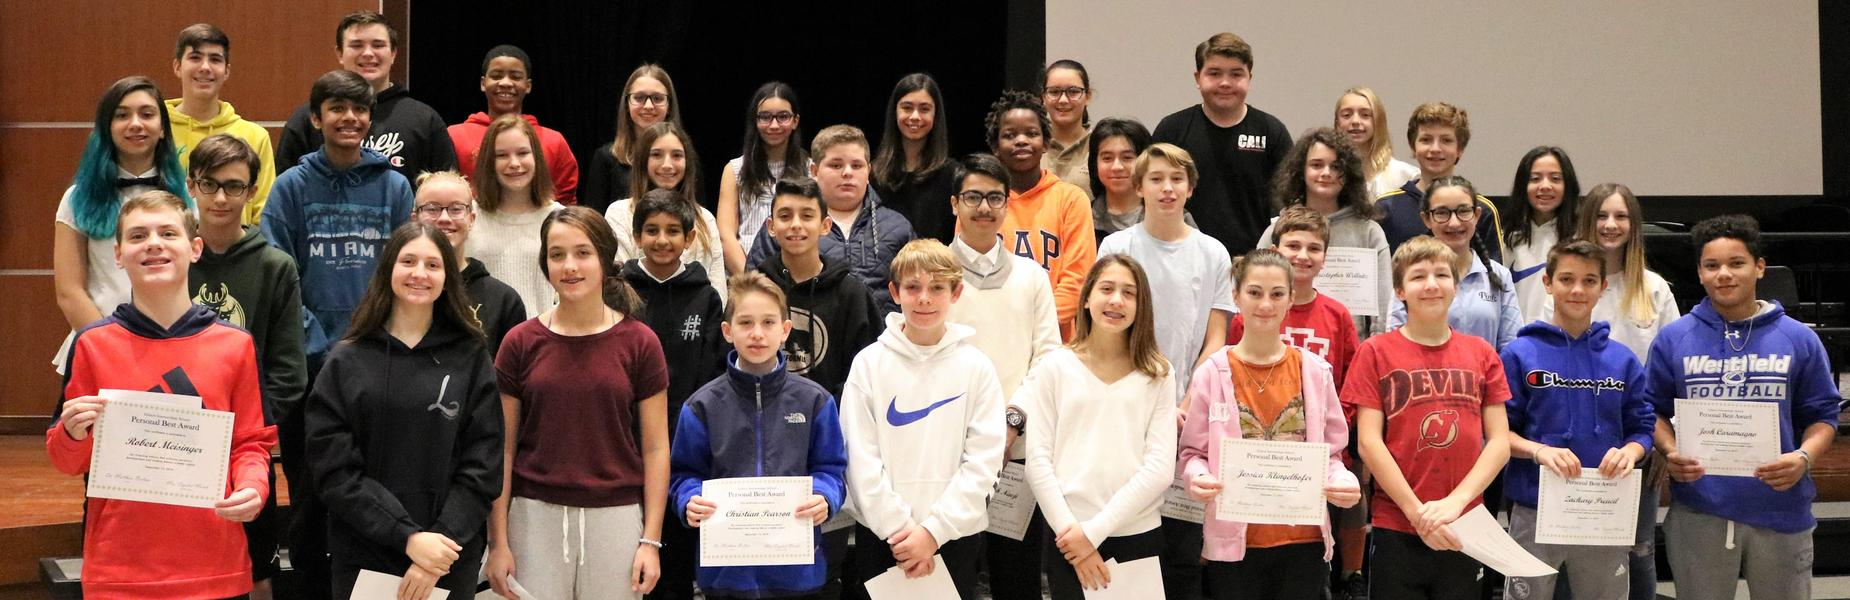 Photo of Edison 8th graders who received Personal Best Awards for good character and kindness